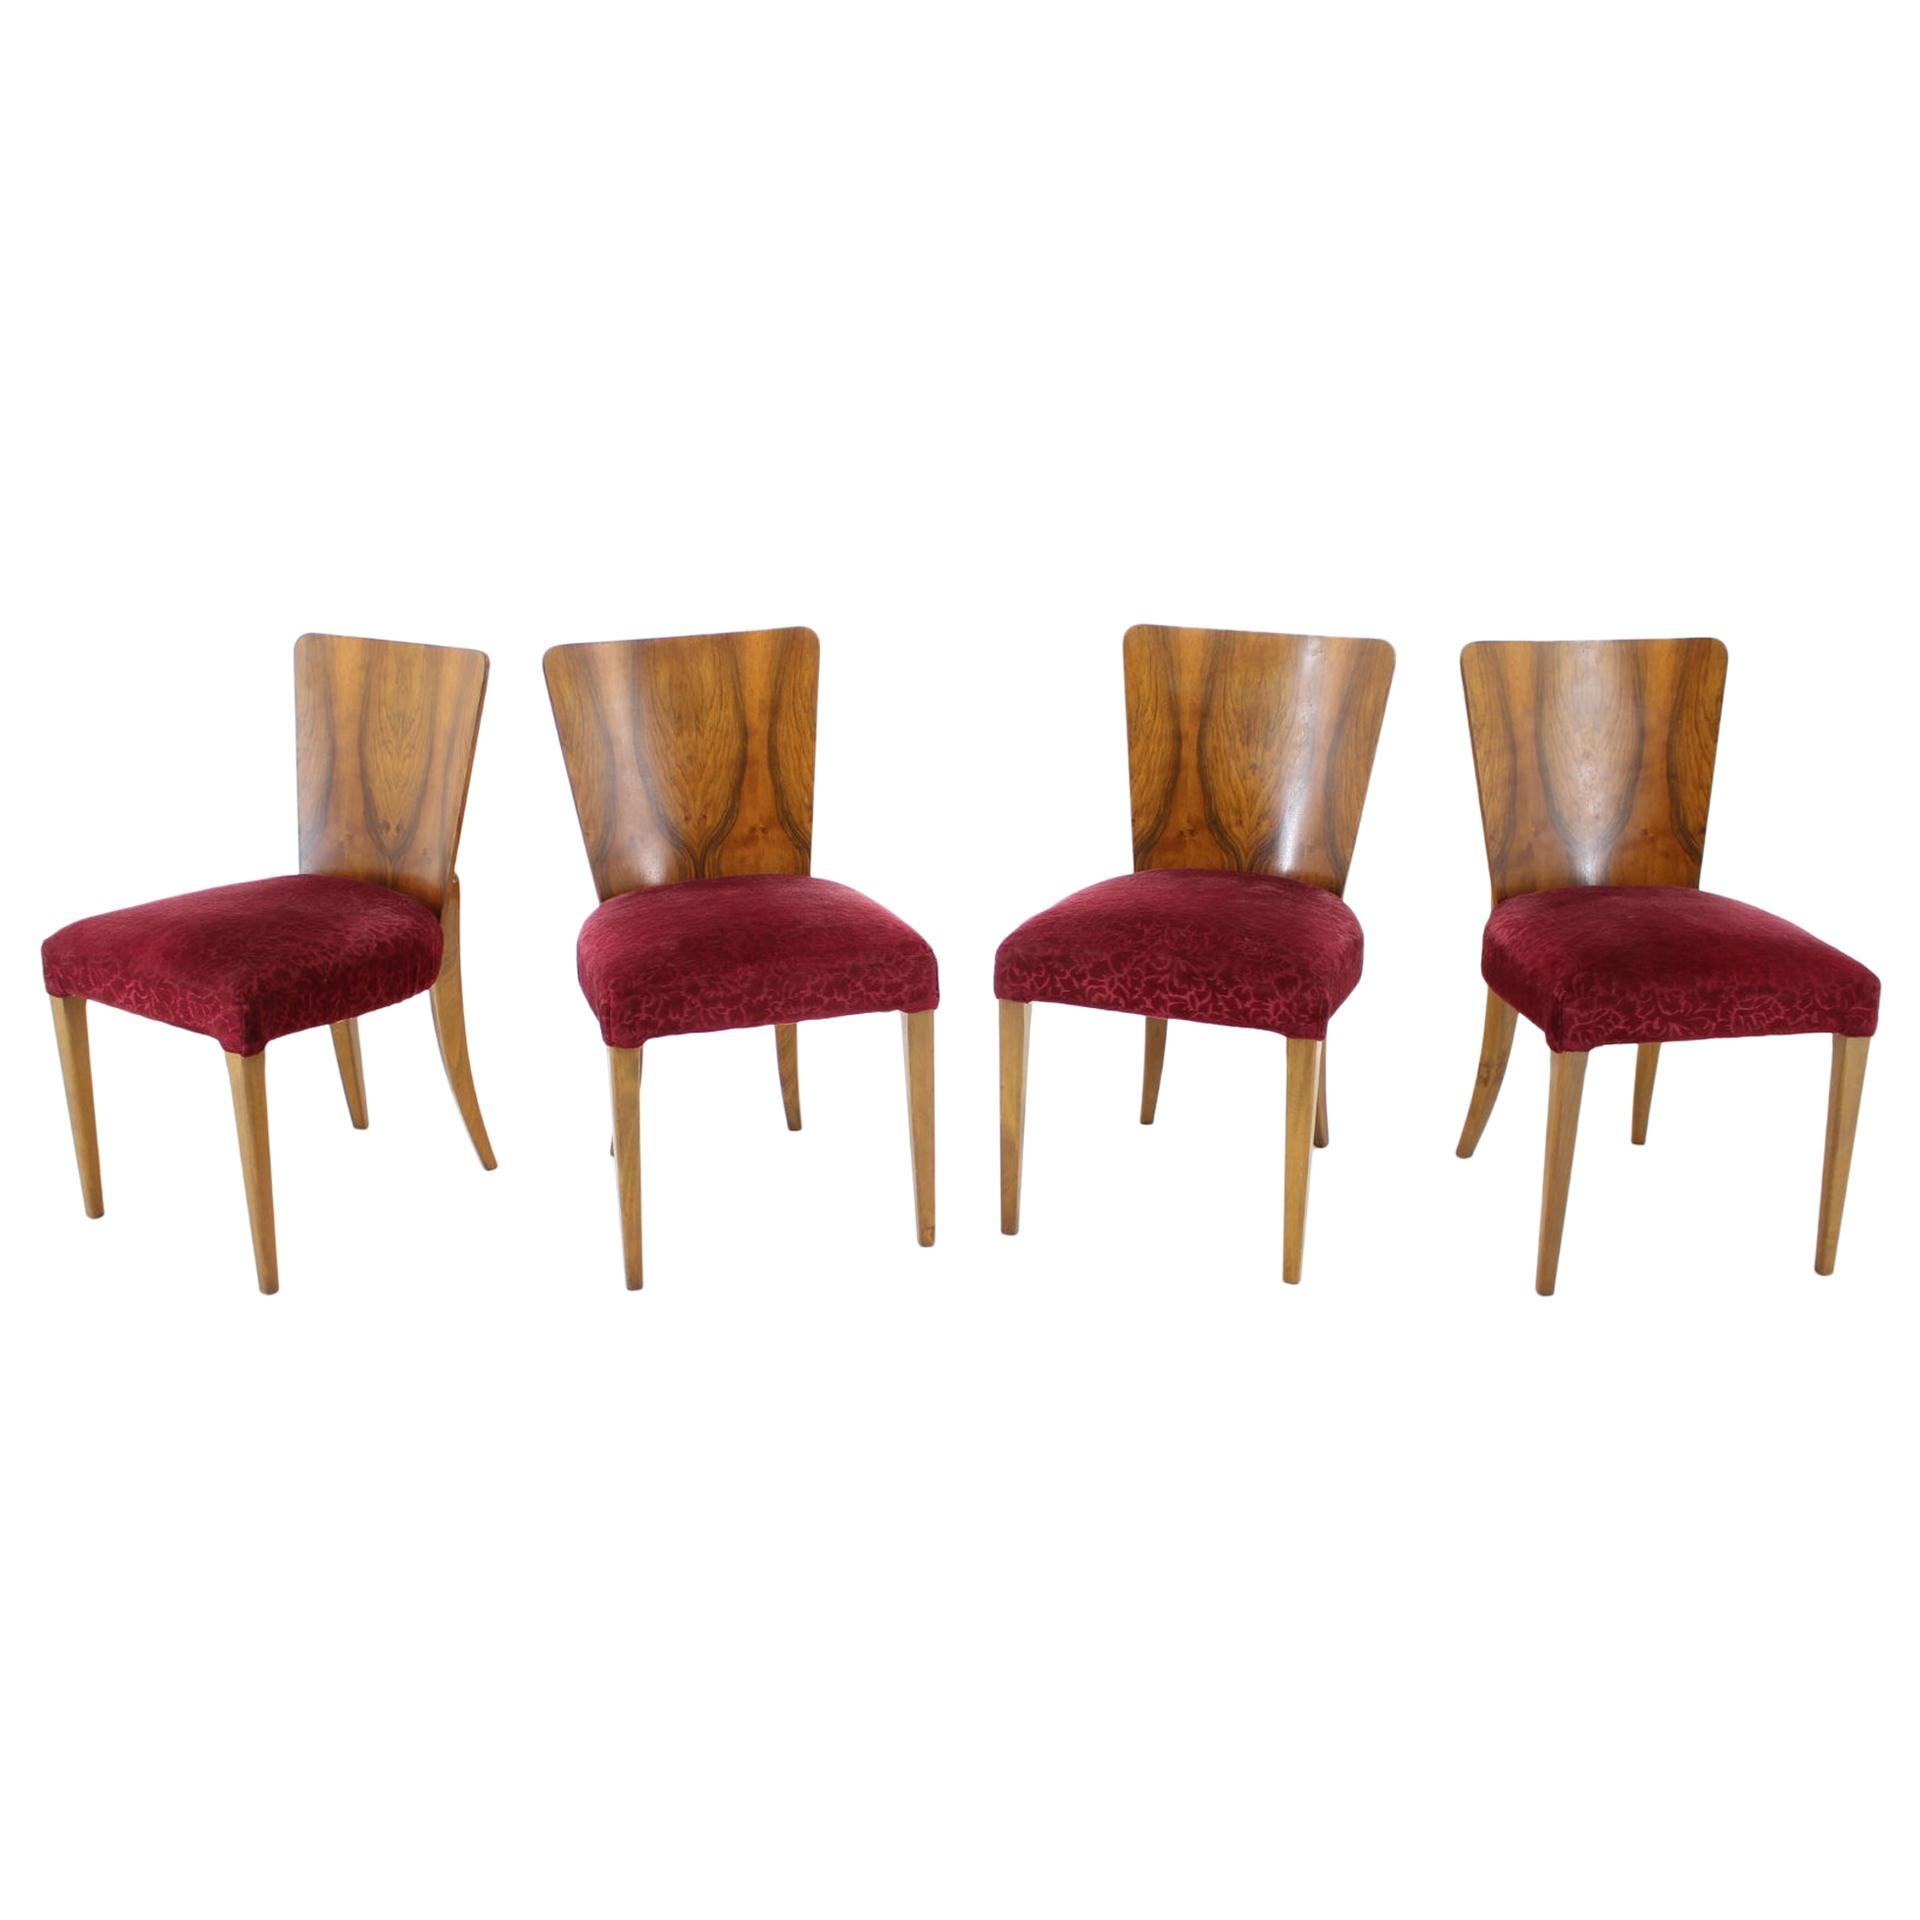 1940s Jindrich Halabala Art Deco Dining Chairs H-214 for UP Závody, Set of 4